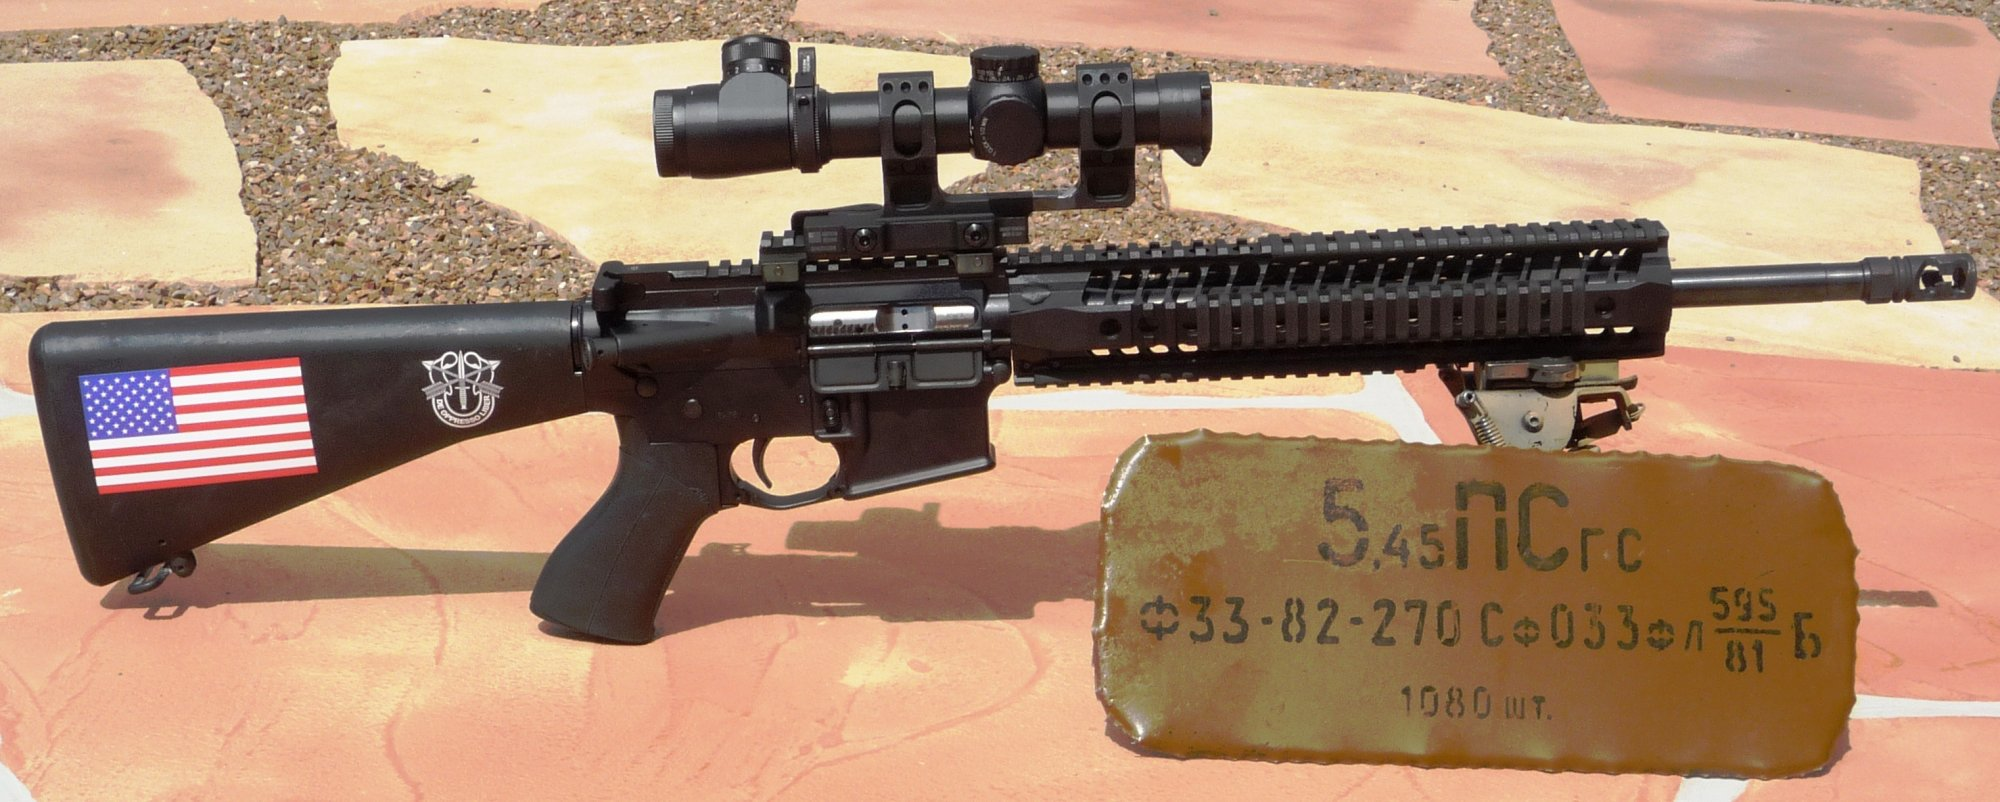 Mike Pannone Target Spikes Tactical 5.45mm Russian AR Carbine Upper Receiver 1 Spikes Tactical 5.45x39mm Russian Mid Length Tactical AR Carbine/Rifle: The greatest training gun ever…if you have to buy your own ammunition, that is.